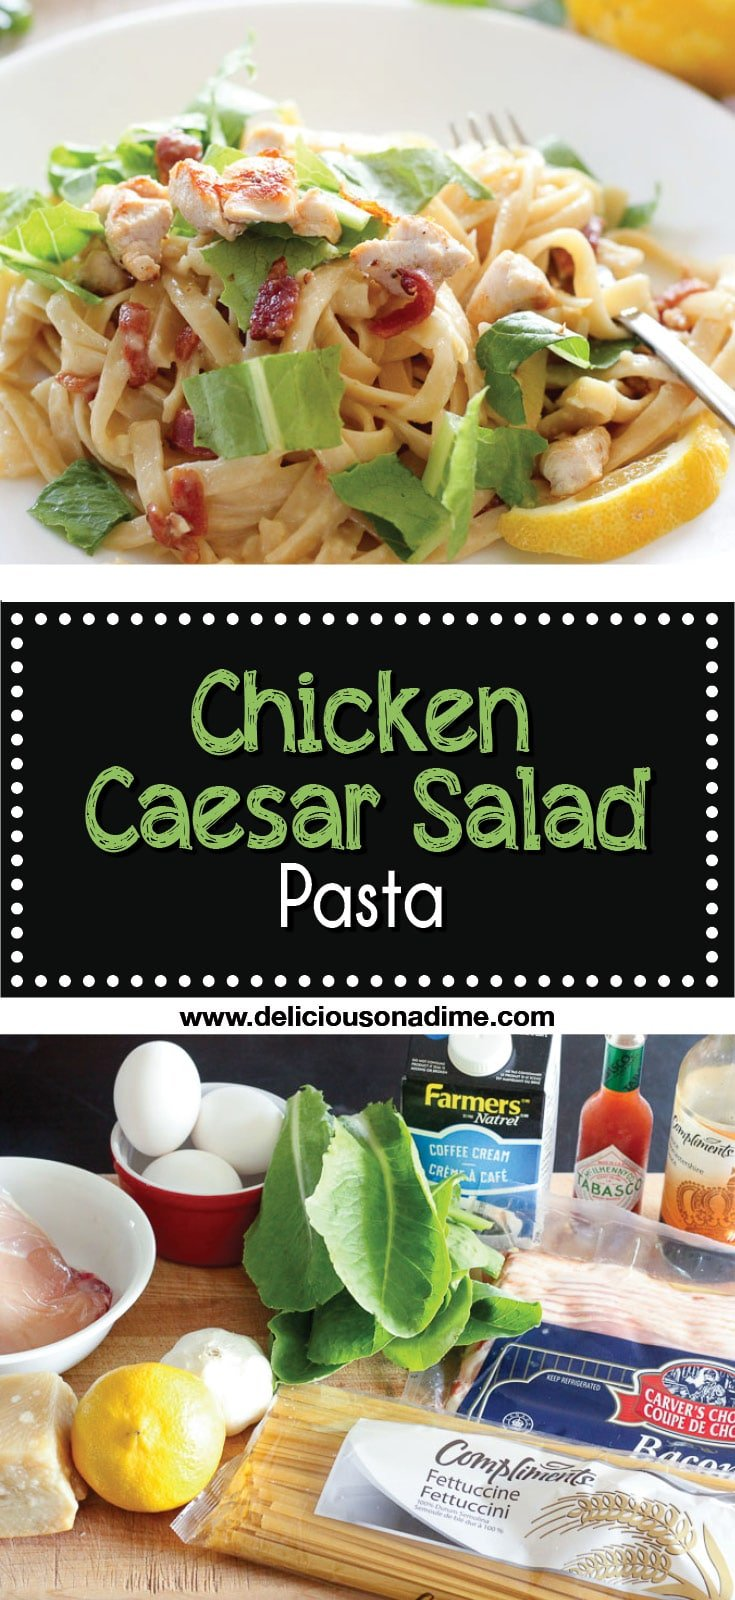 This Chicken Caesar Salad Pasta brings you the best of both worlds. Perfect for when you're craving the freshness of your favourite garlicky, lemony caesar salad, but hungry for a big plate of comfort food. Chicken caesar salad - meet pasta.